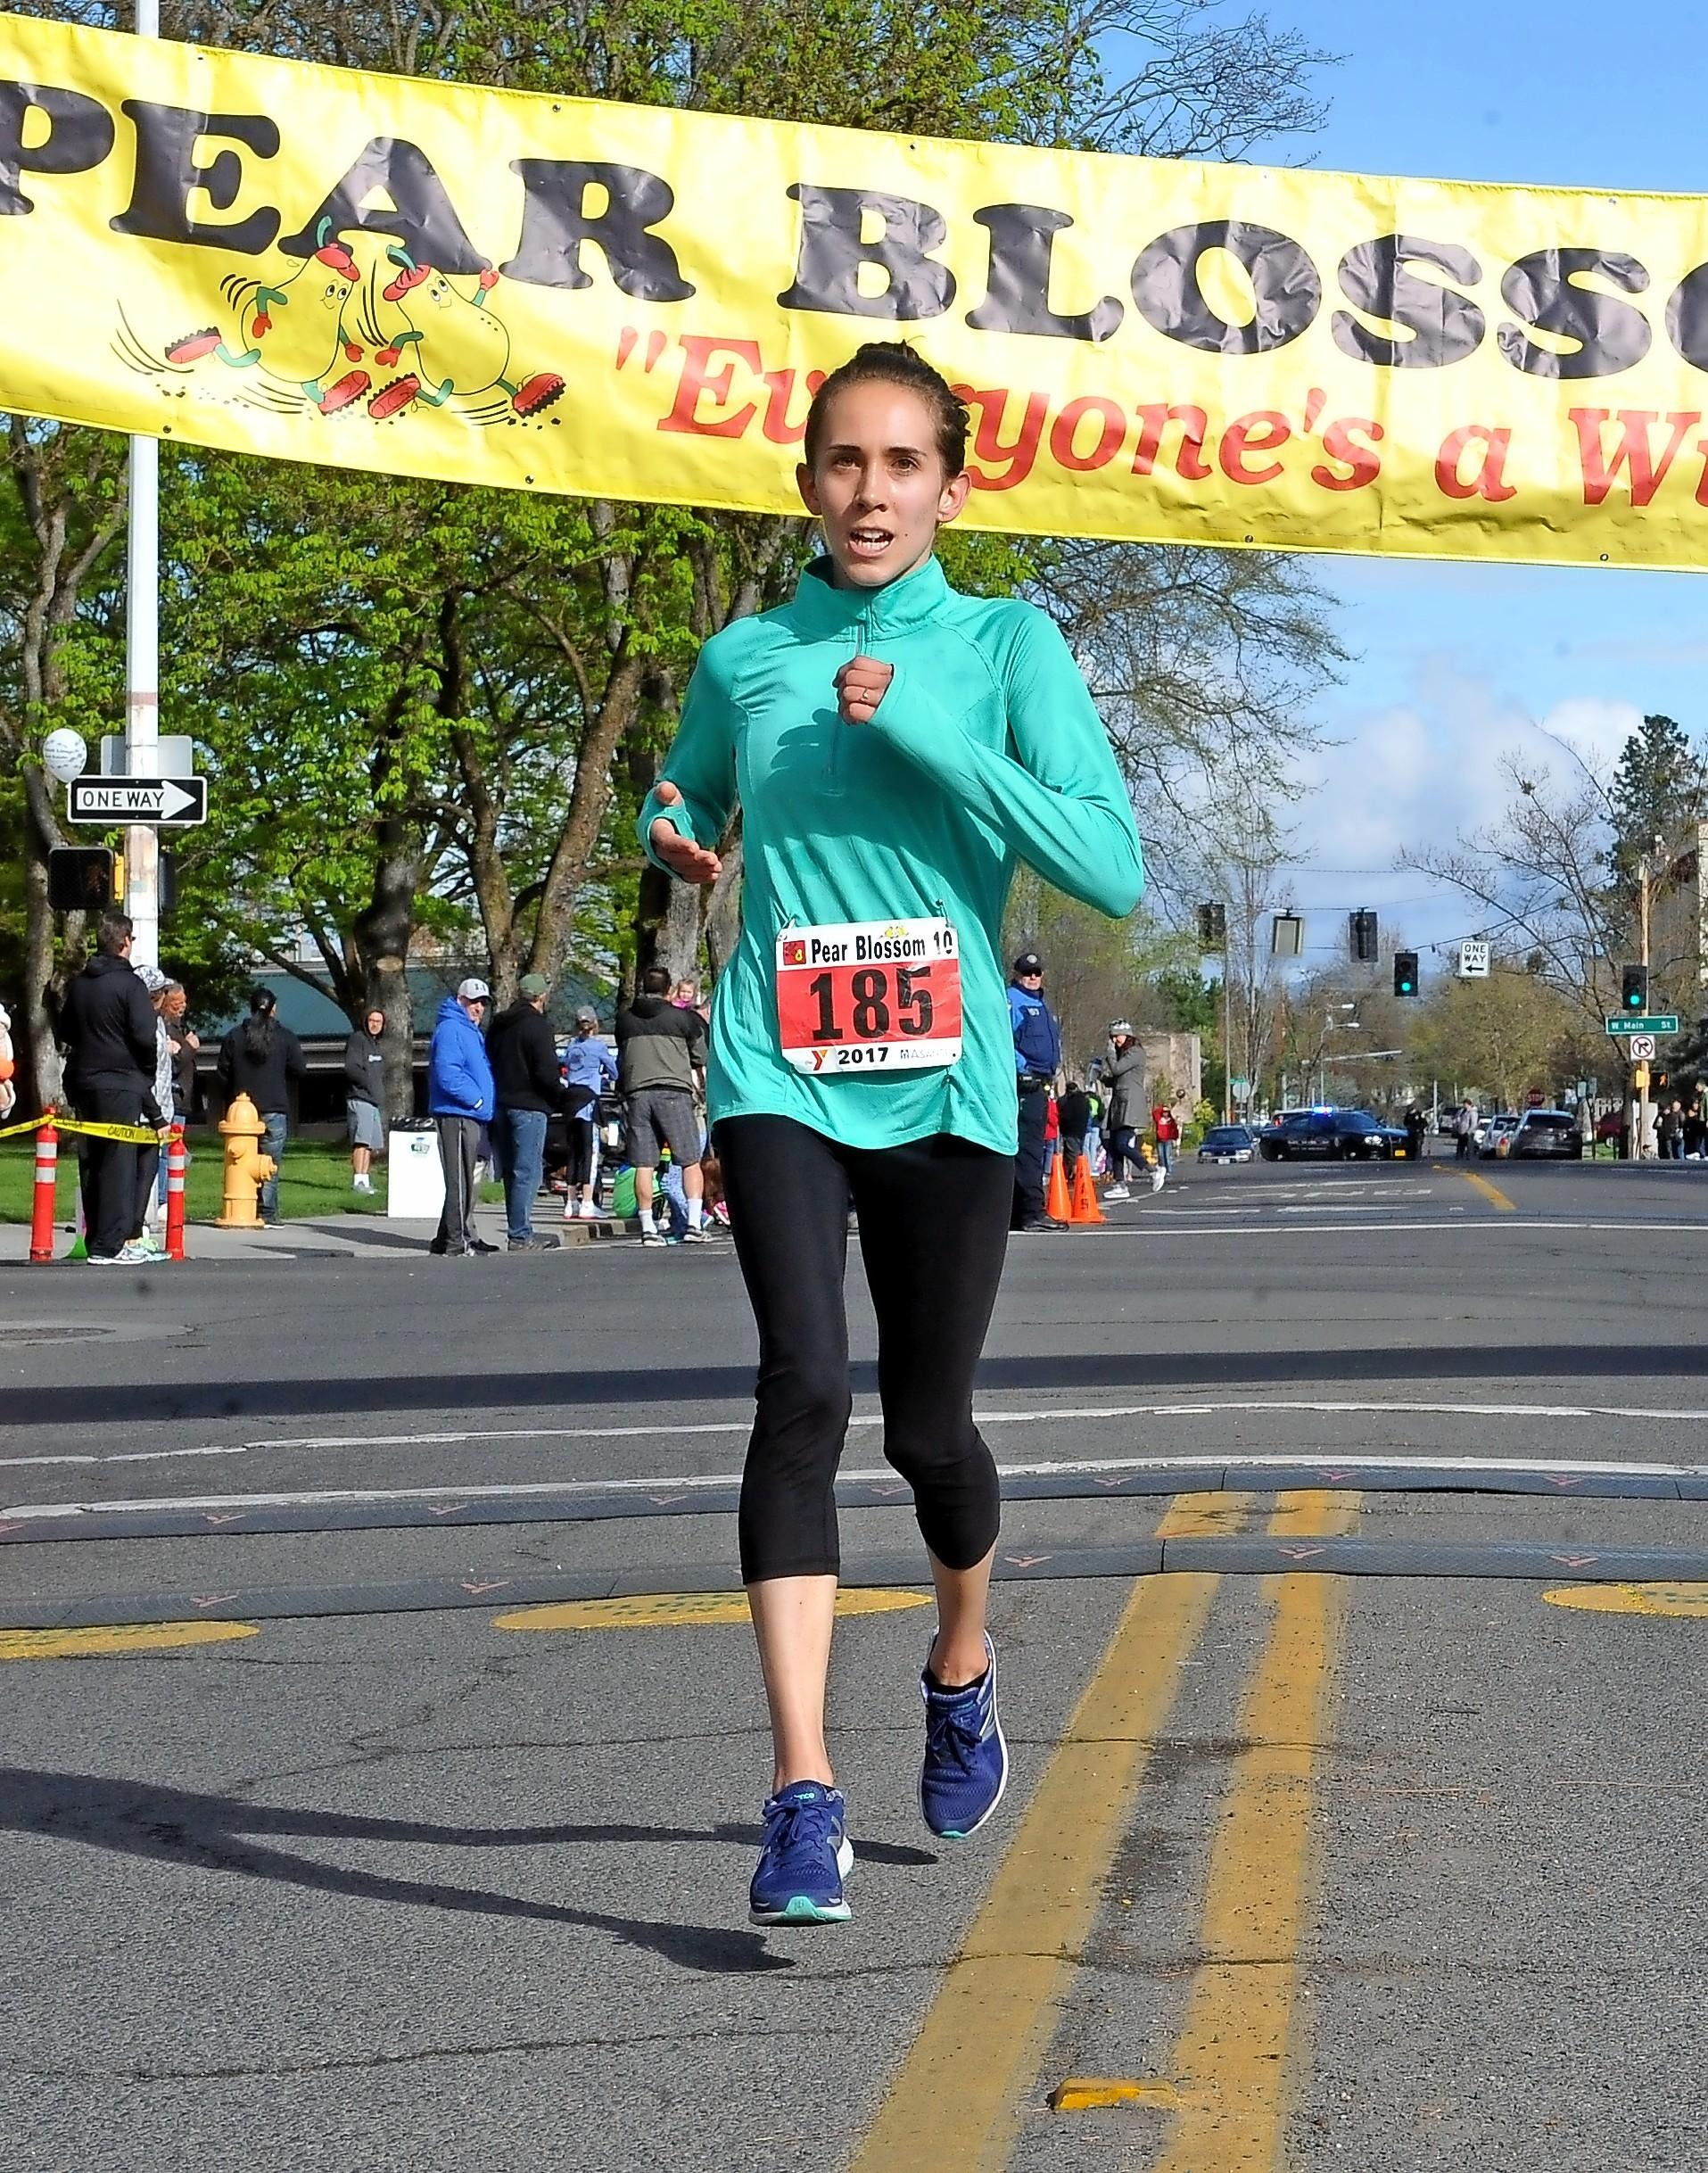 Denise Baratta / MT File Photo Medford's Heather Johnson finished 2nd place in the 2017 Pear Blossom 10-Mile Run.